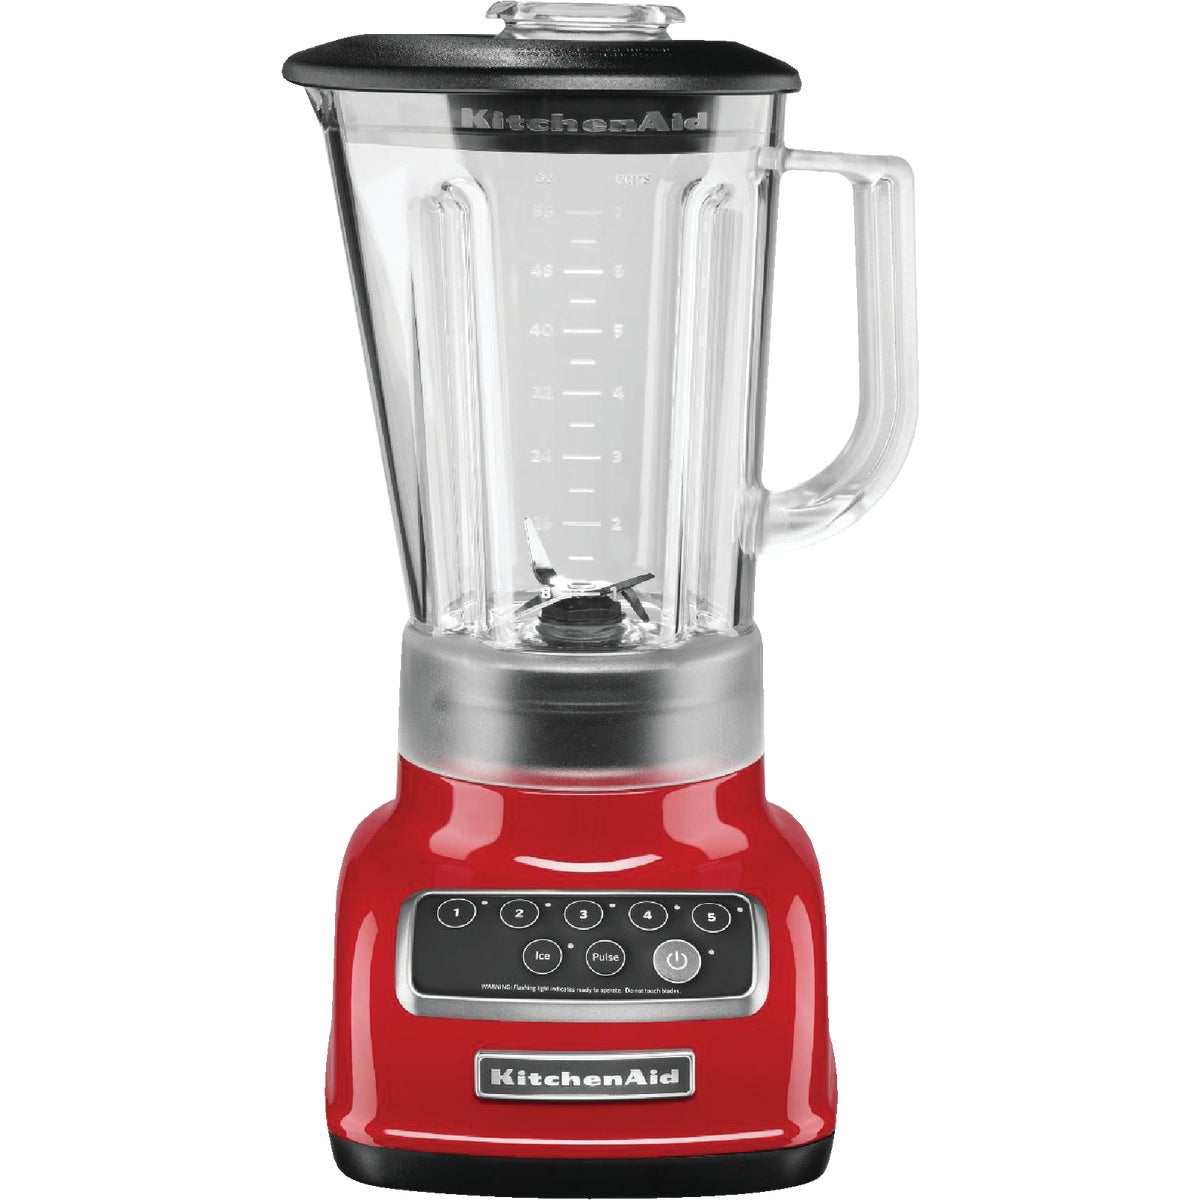 RED 5-SPD BLENDER - KSB1570ER by Kitchenaid Inc